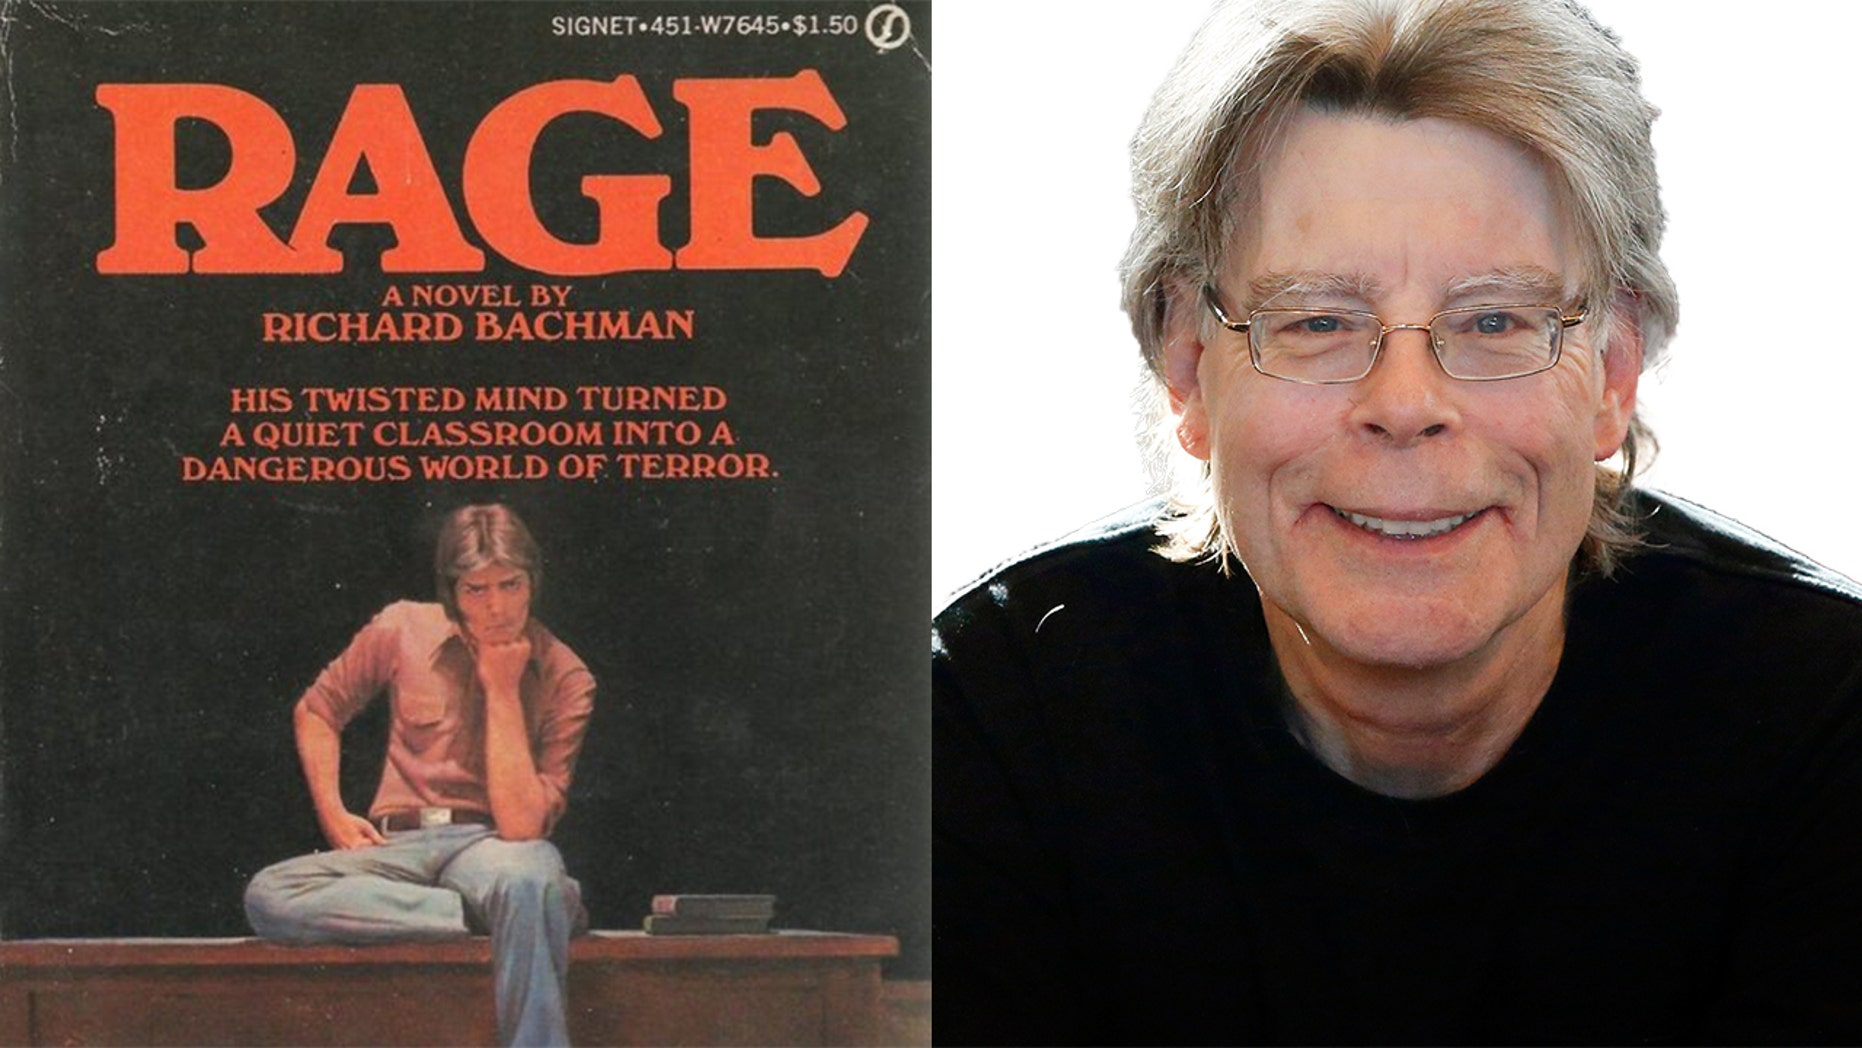 """Author Stephen King stopped selling his controversial book """"Rage,"""" originally published under pen name Richard Bachman, after it inspired several school shooters."""